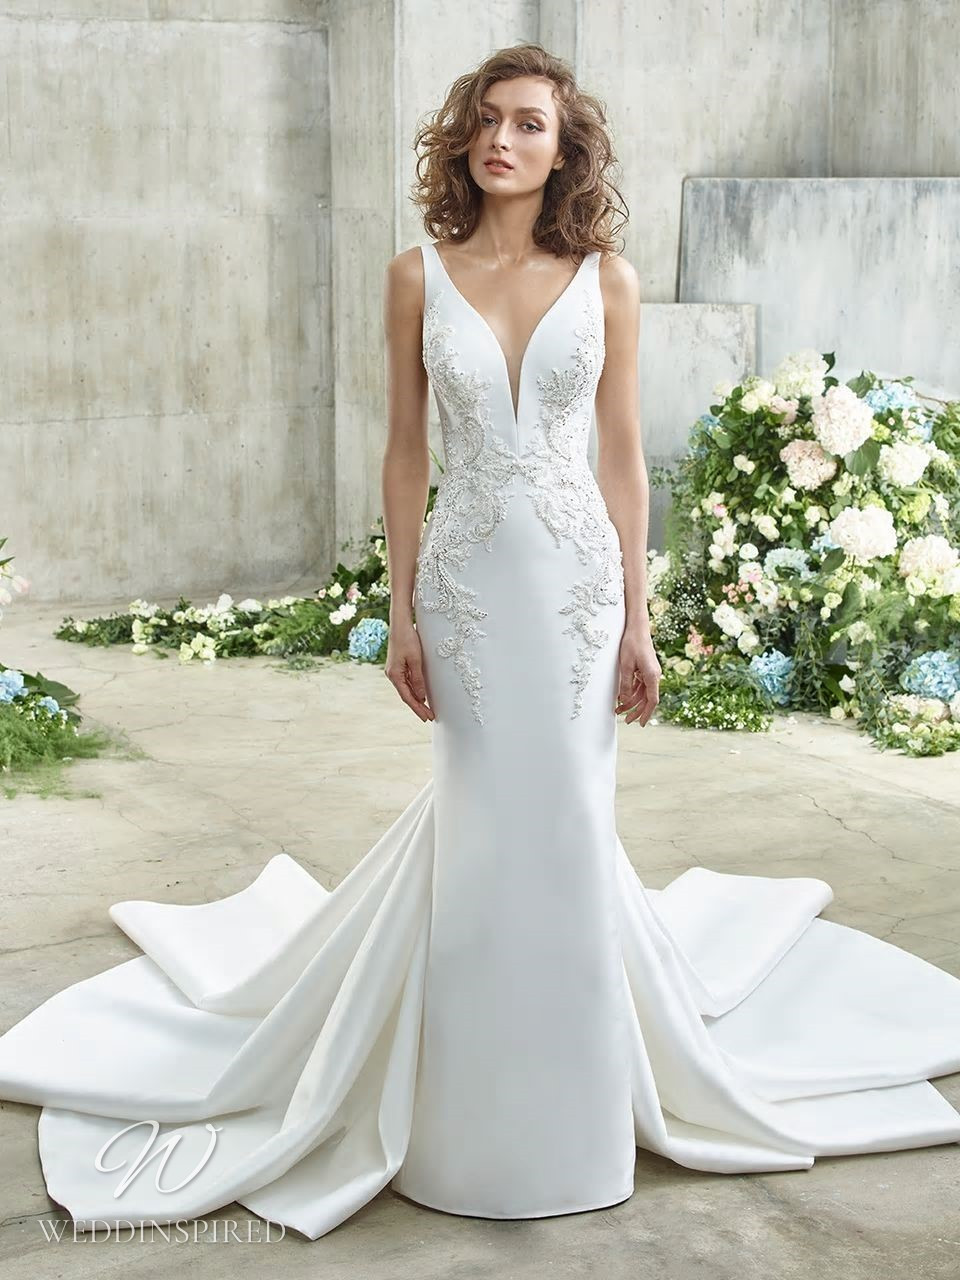 A Badgley Mischka silk mermaid wedding dress with a detachable skirt, embroidery and a v neckline